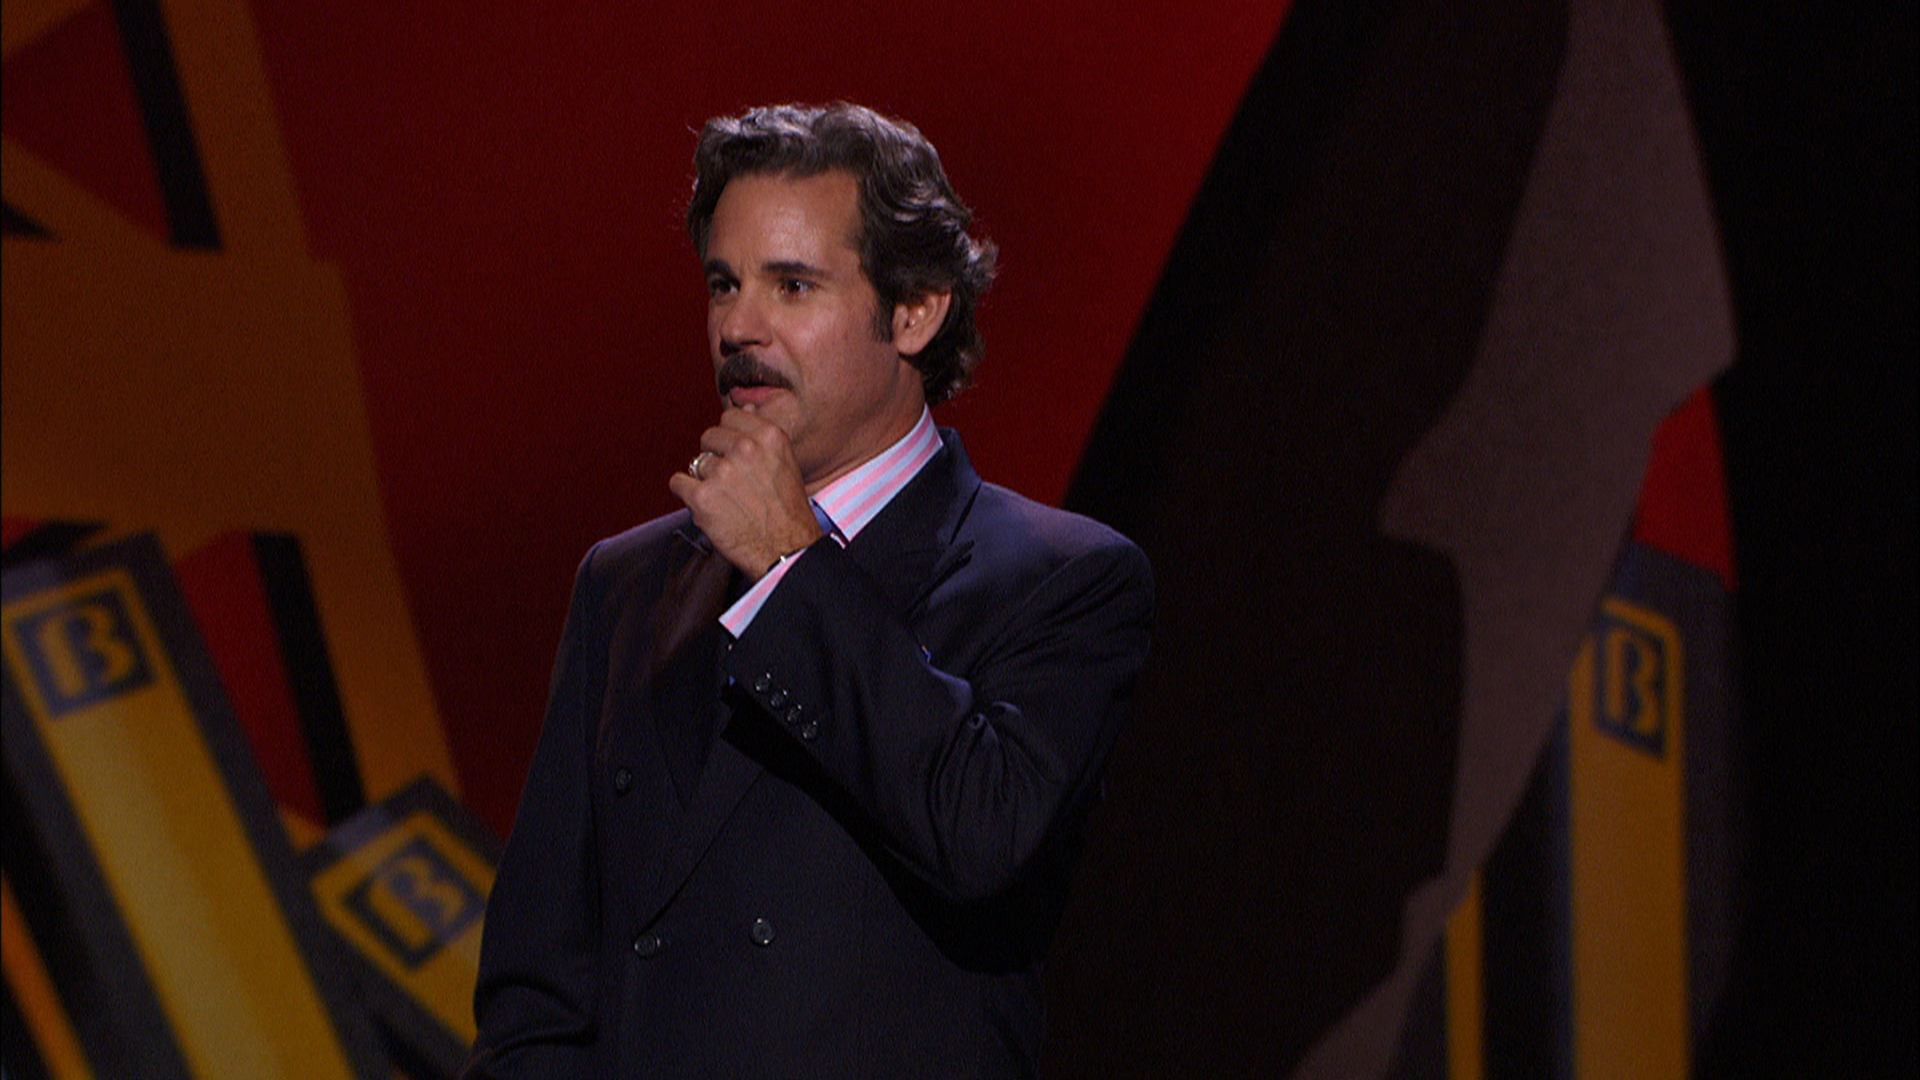 Paul F. Tompkins - Expected to Steal